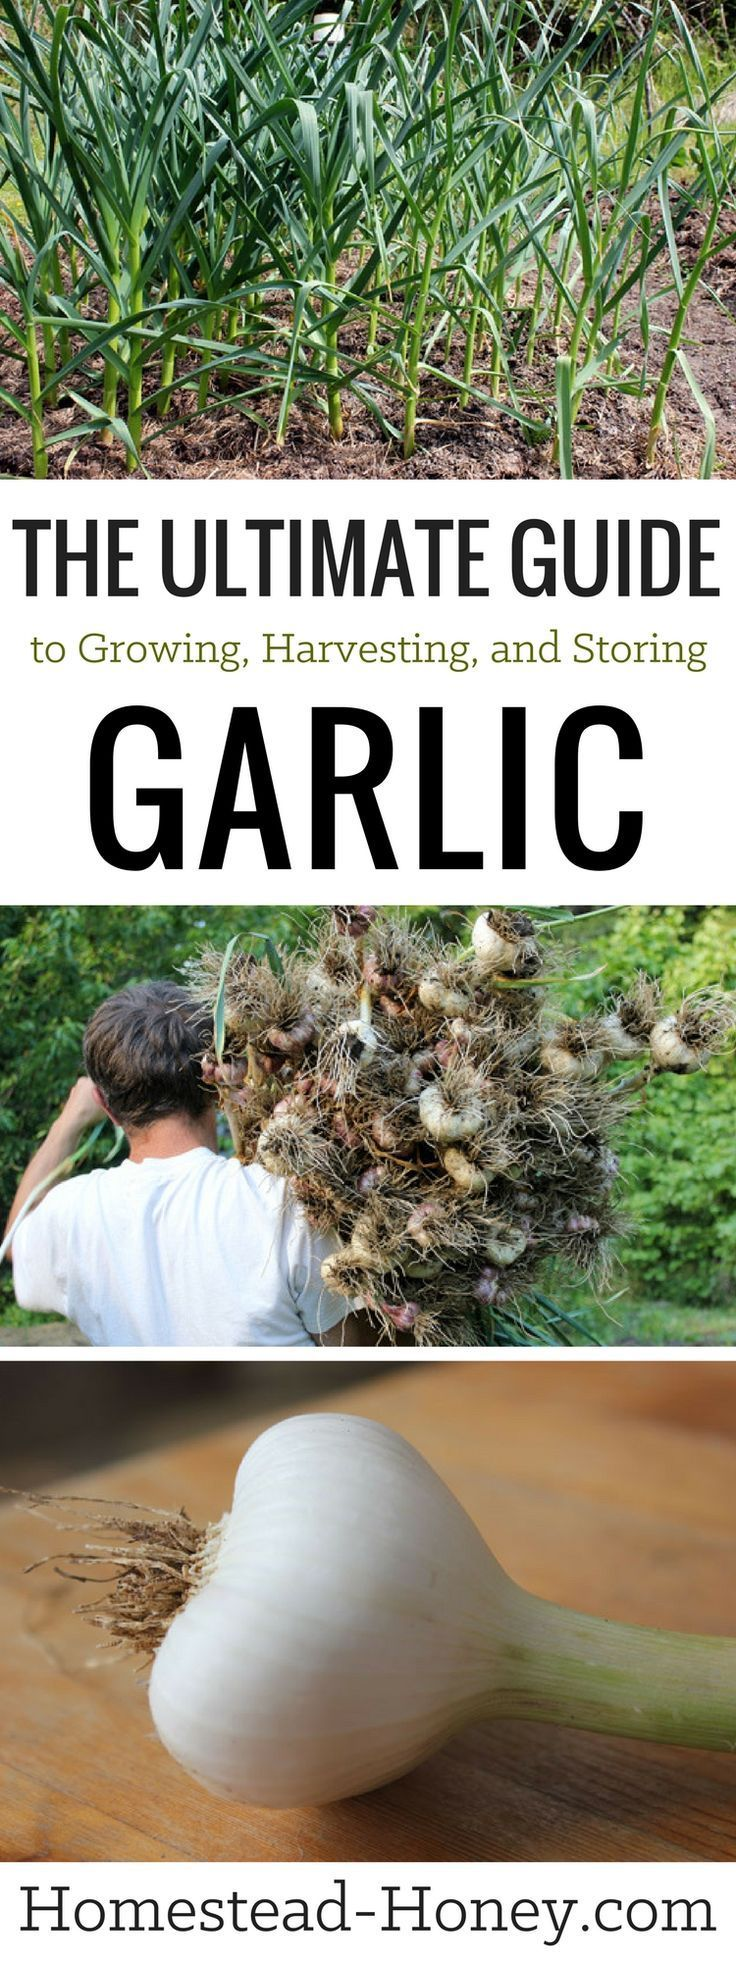 Treasured for its medicinal and culinary properties, garlic is also incredibly easy to grow in your home garden. Learn more in The Ultimate Guide to growing, harvesting, and storing garlic | Homestead Honey